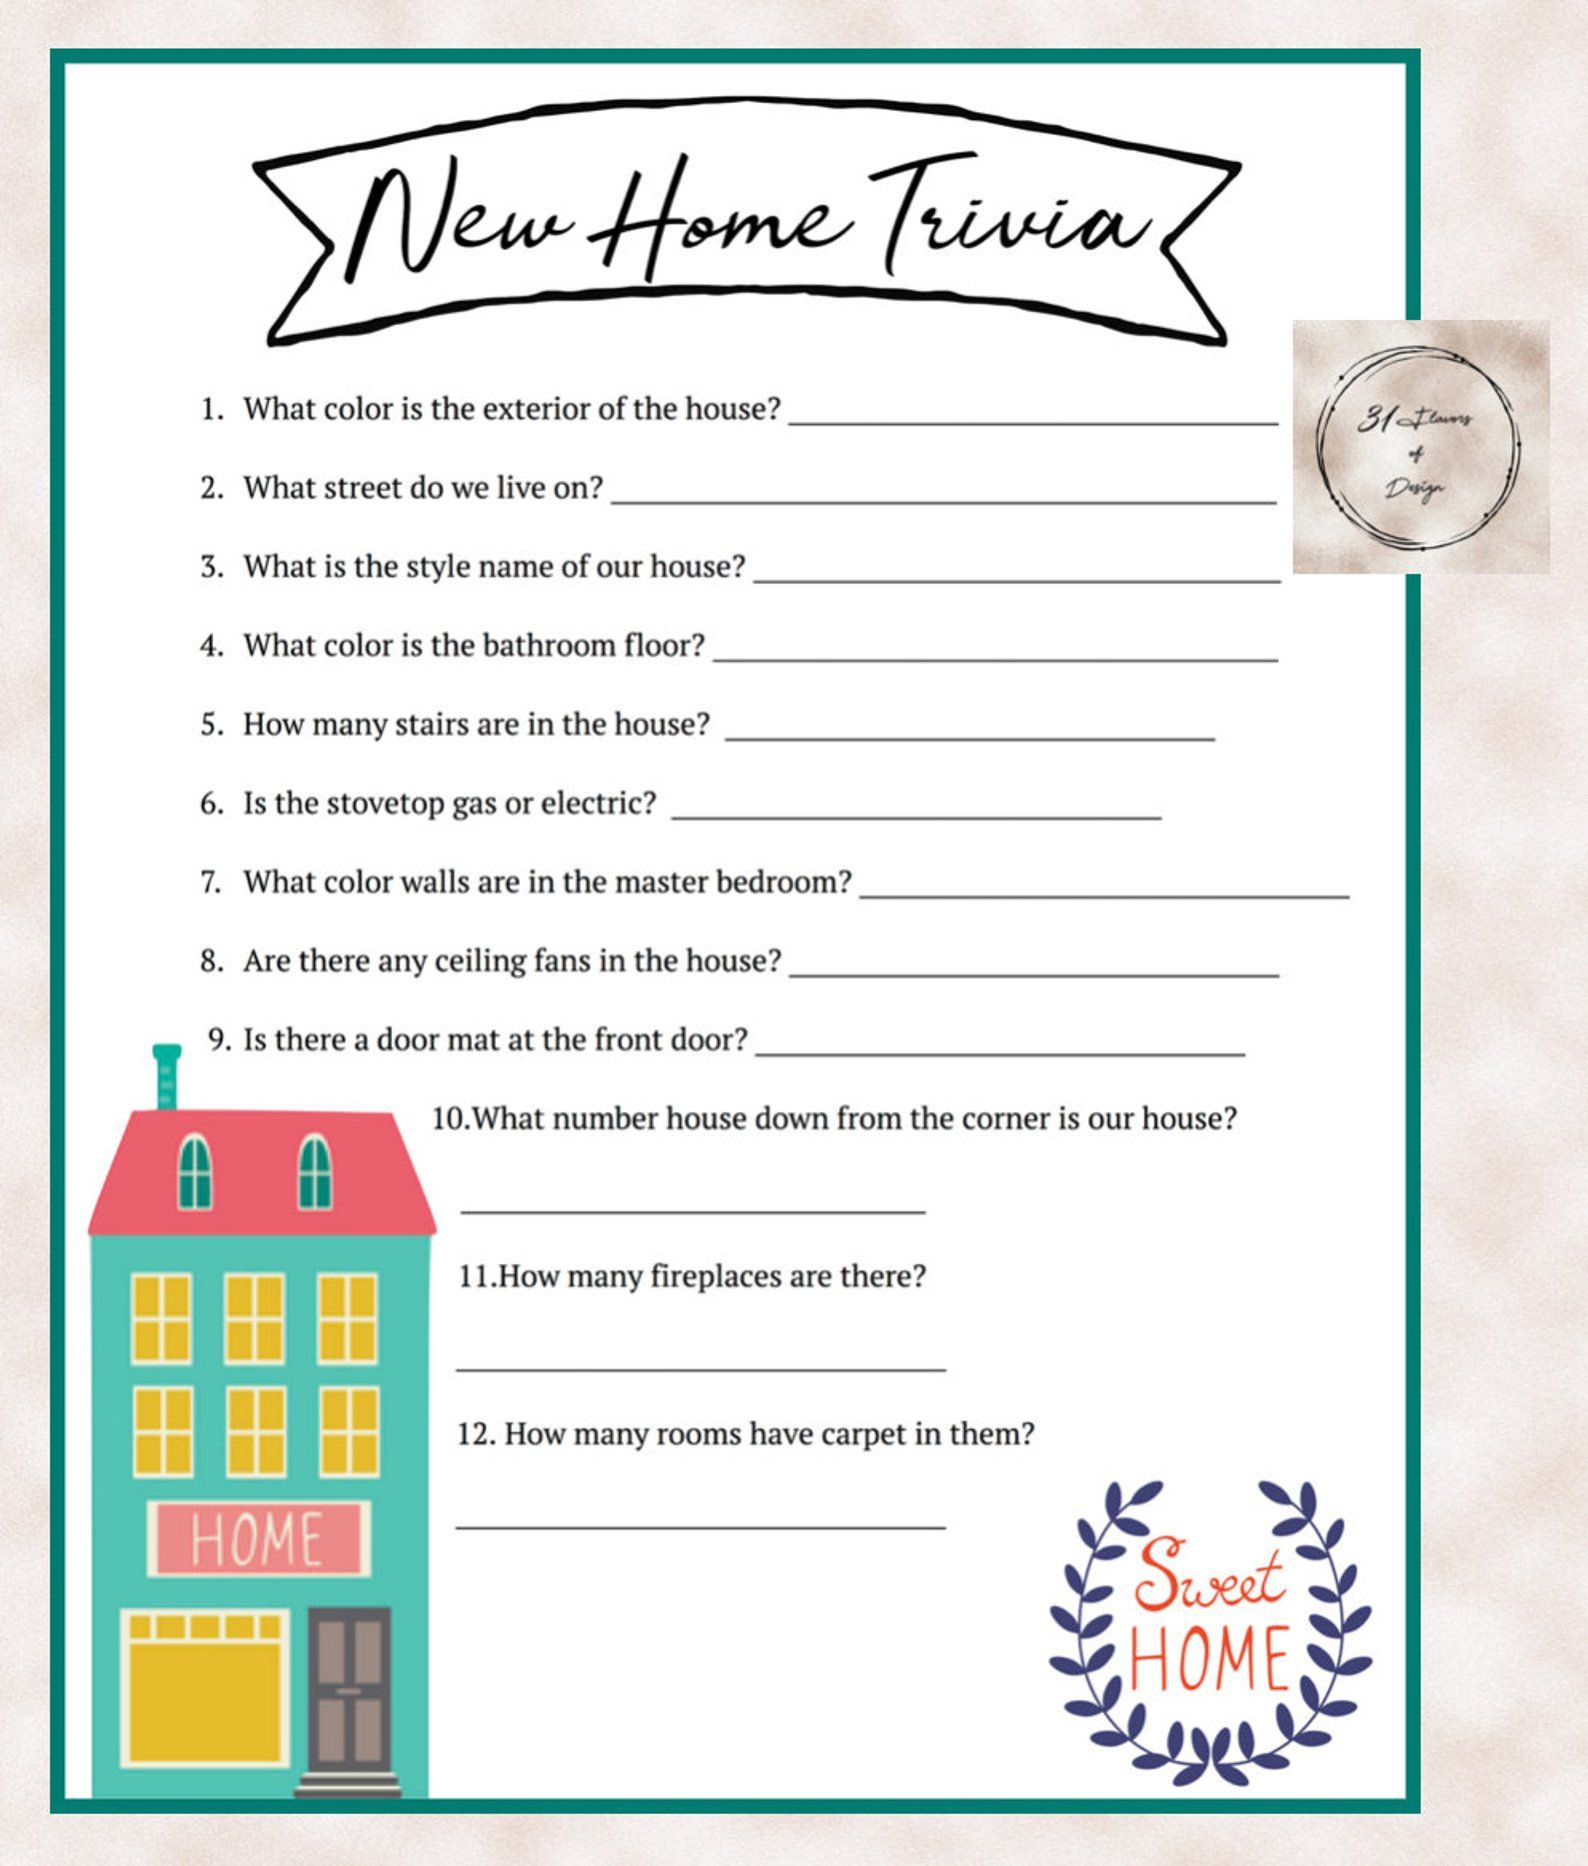 House Warming Party New Home Trivia Game Instant Download